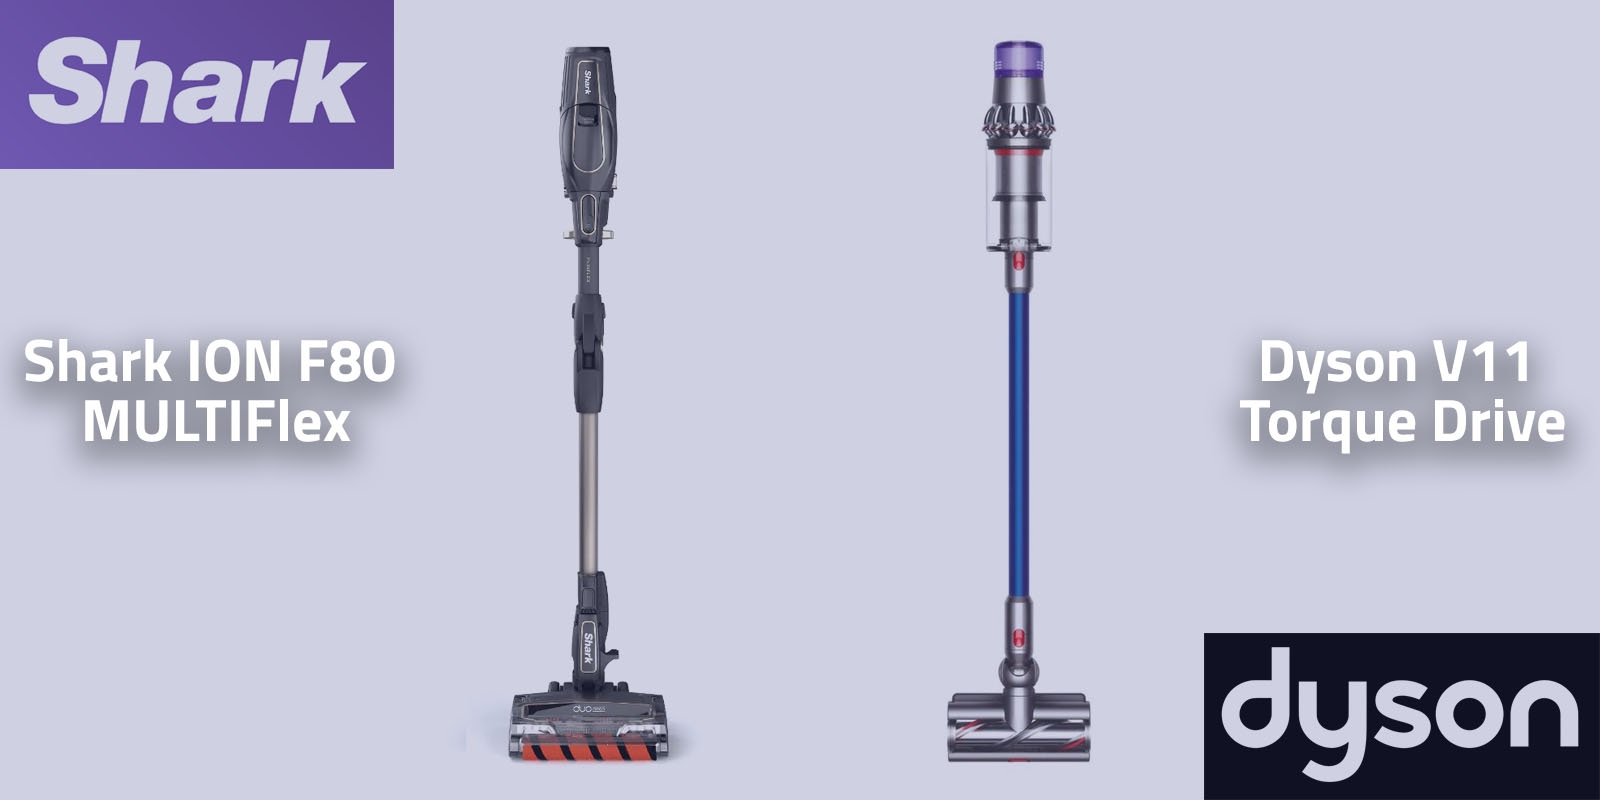 Shark ION F80 MultiFLEX vs Dyson V11 Torque Drive